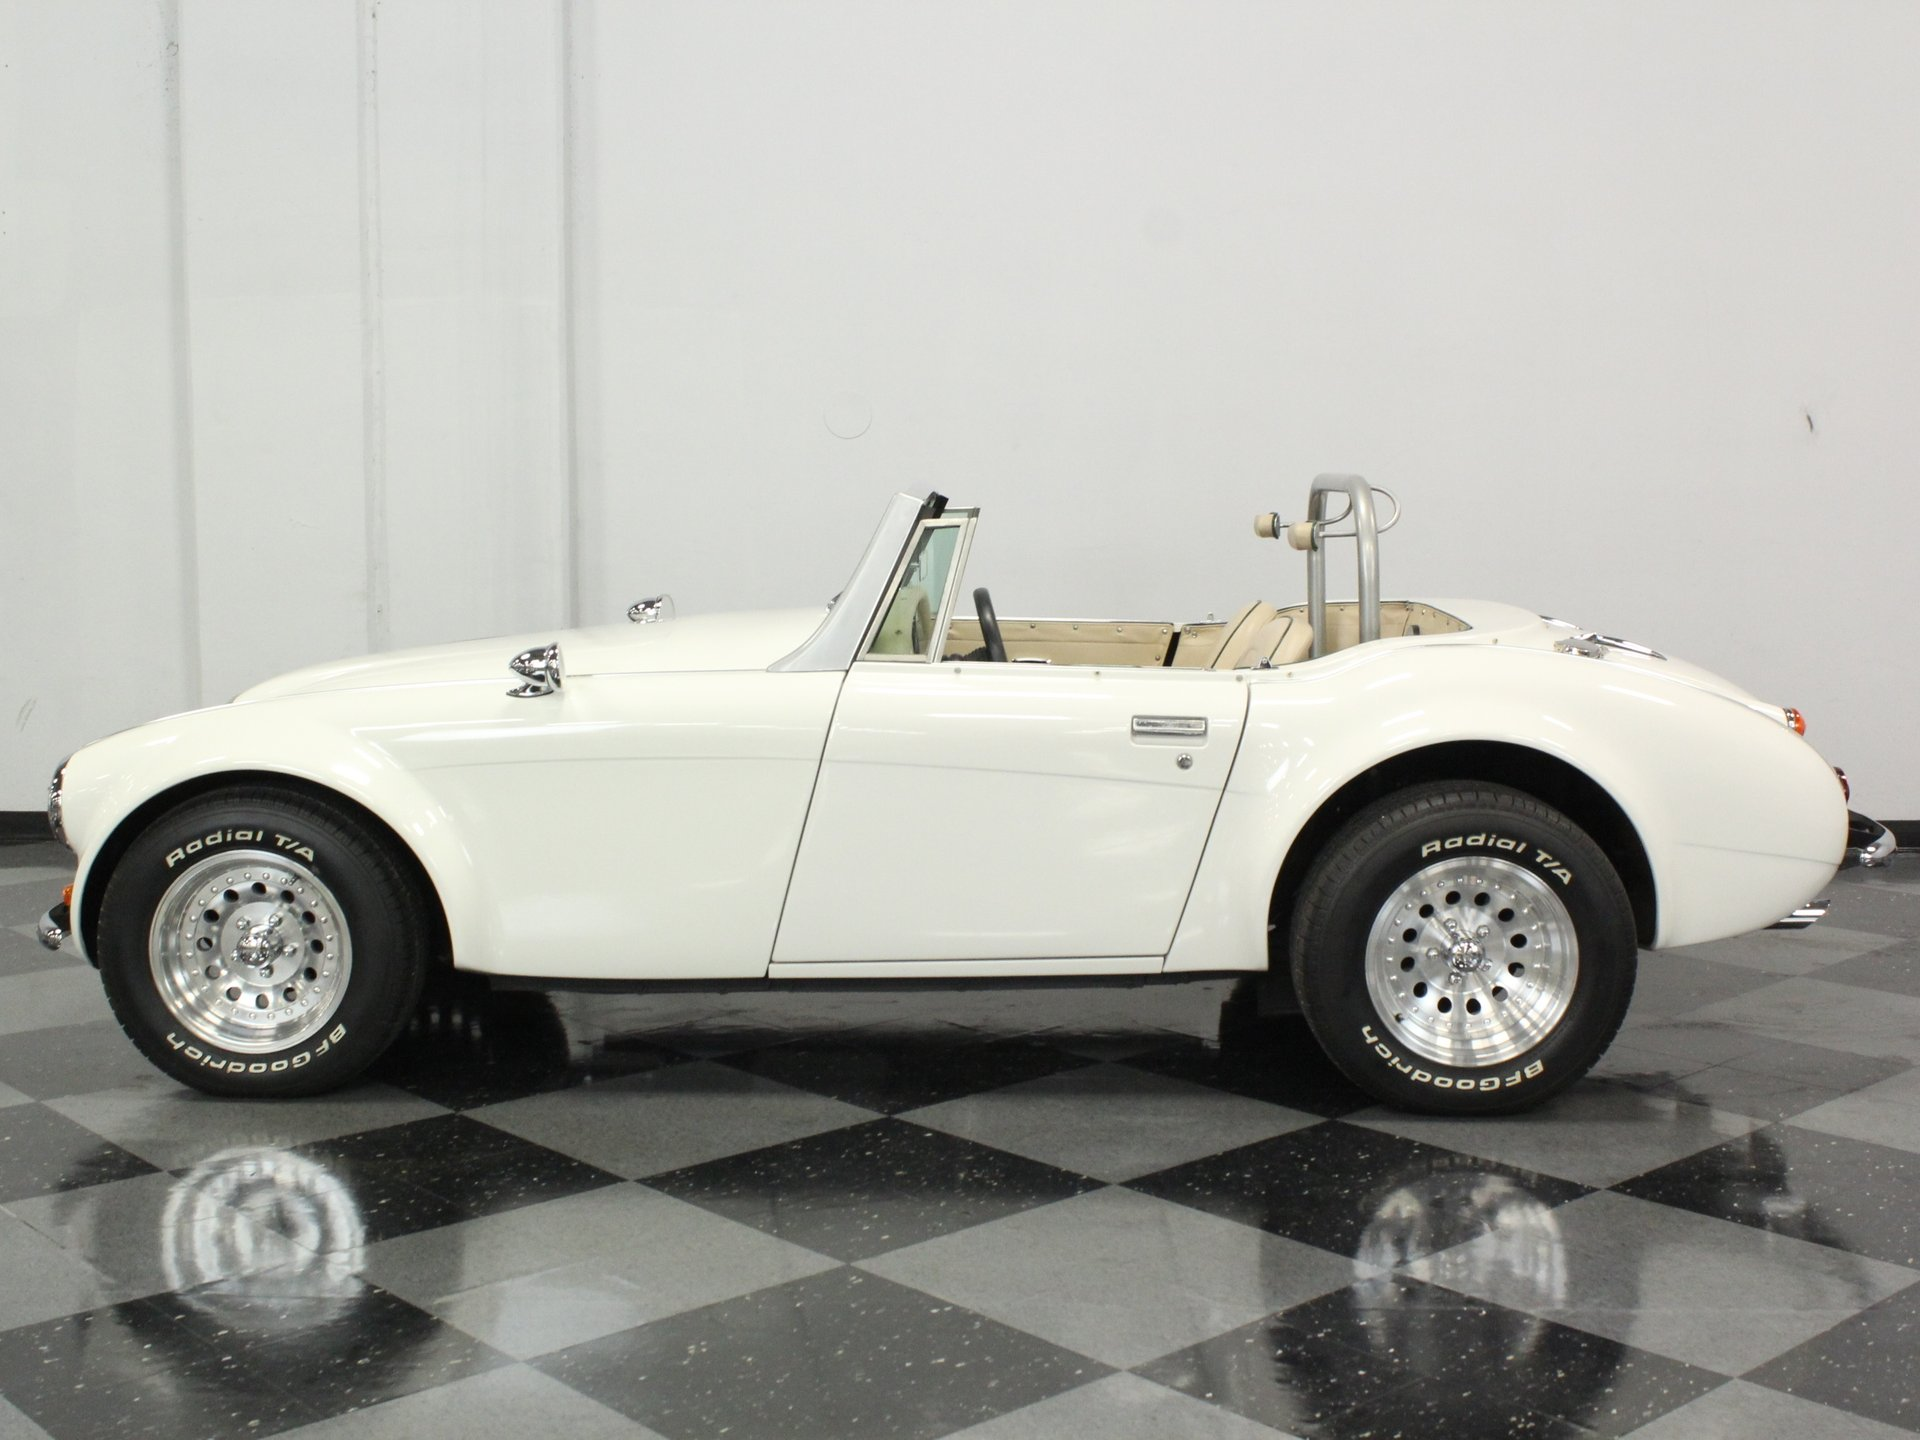 1965 austin healey 3000 mark iii replica